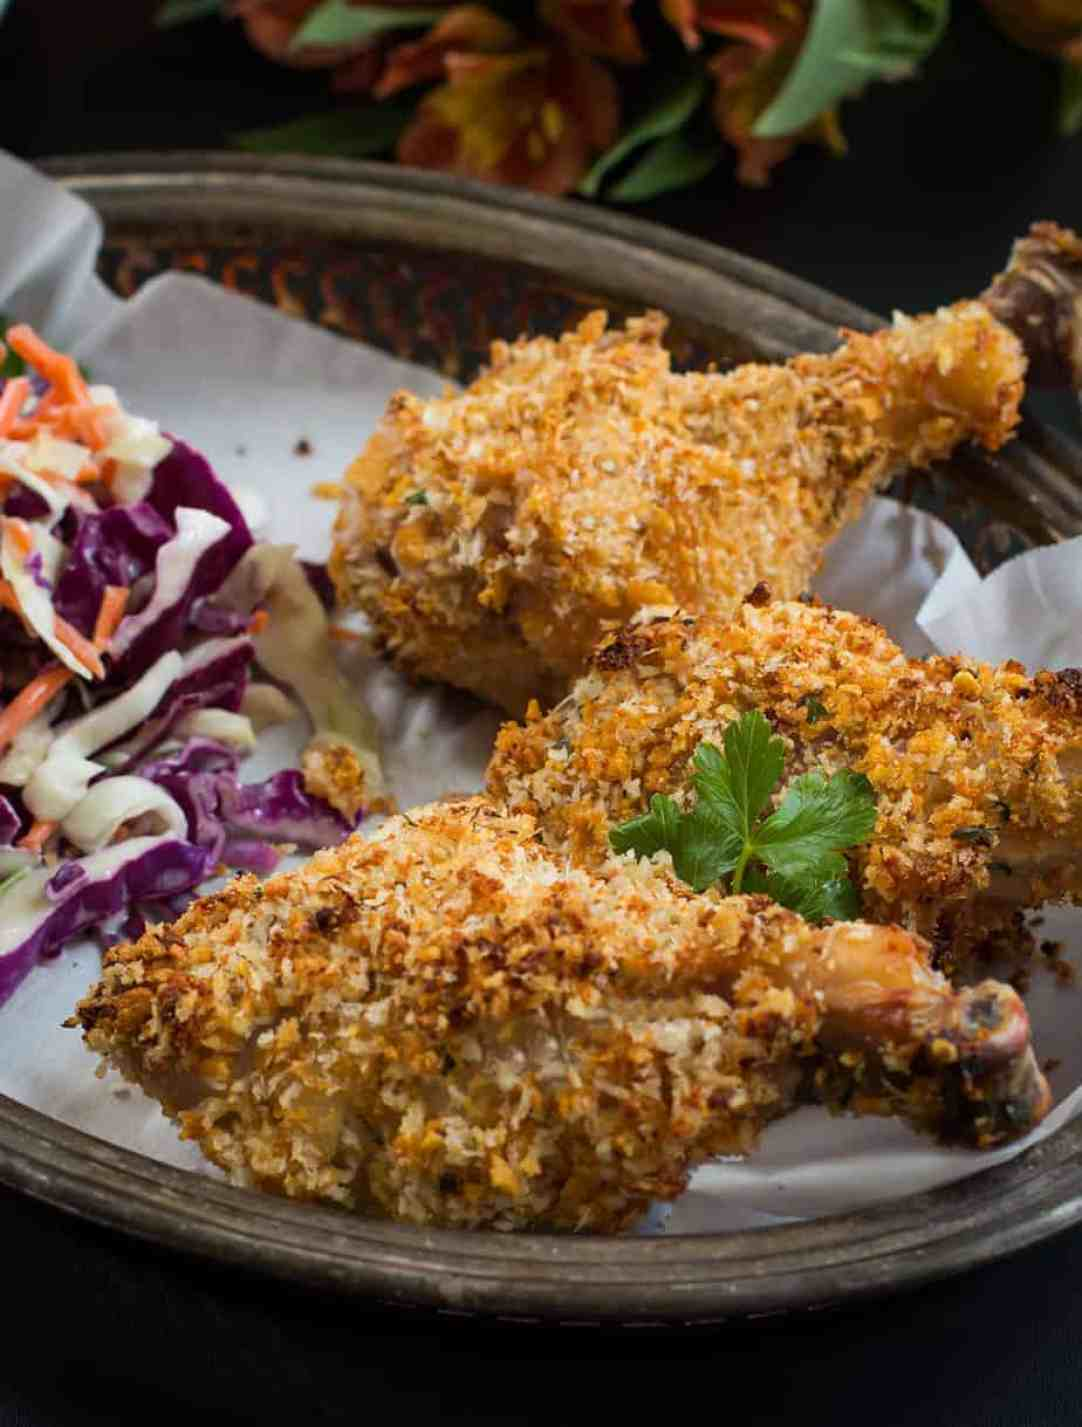 crispy oven baked chicken legs with buttermilk. oven baked fried chicken with less greasy